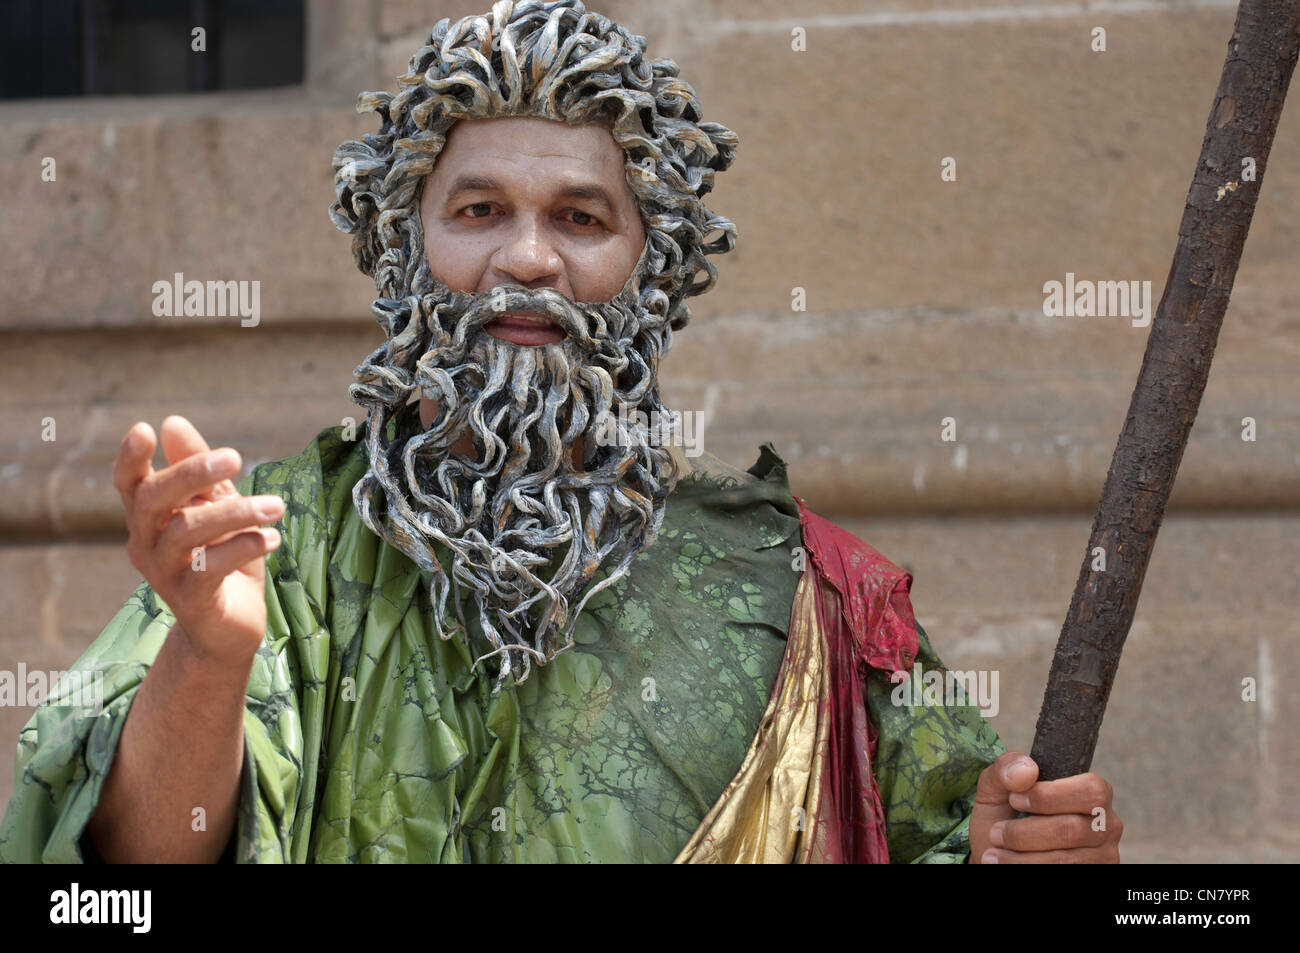 Spain, Galicia, Santiago de Compostela, street show inspired by the Bible - Stock Image